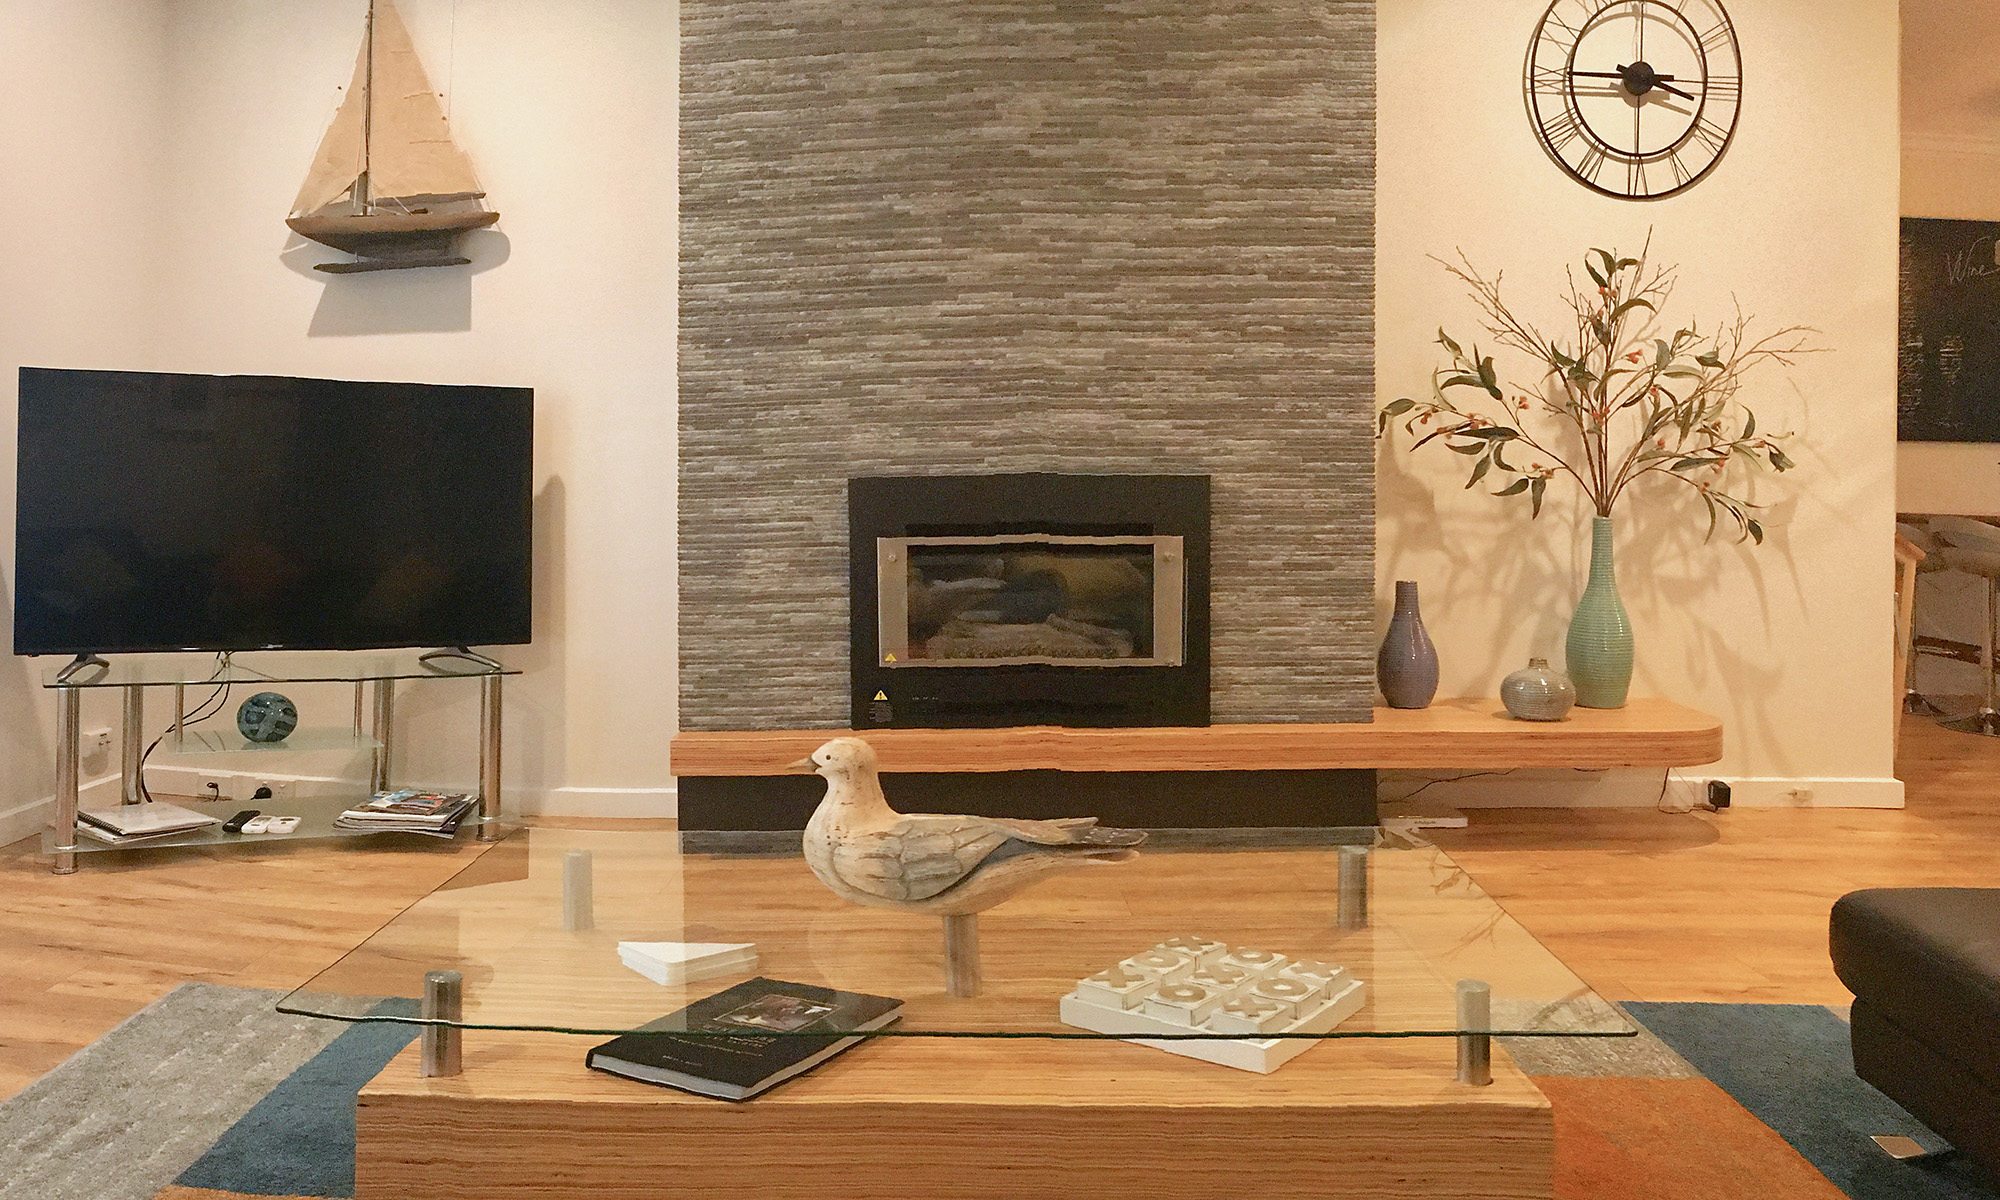 Adelaide beach holiday accommodation spacious lounge